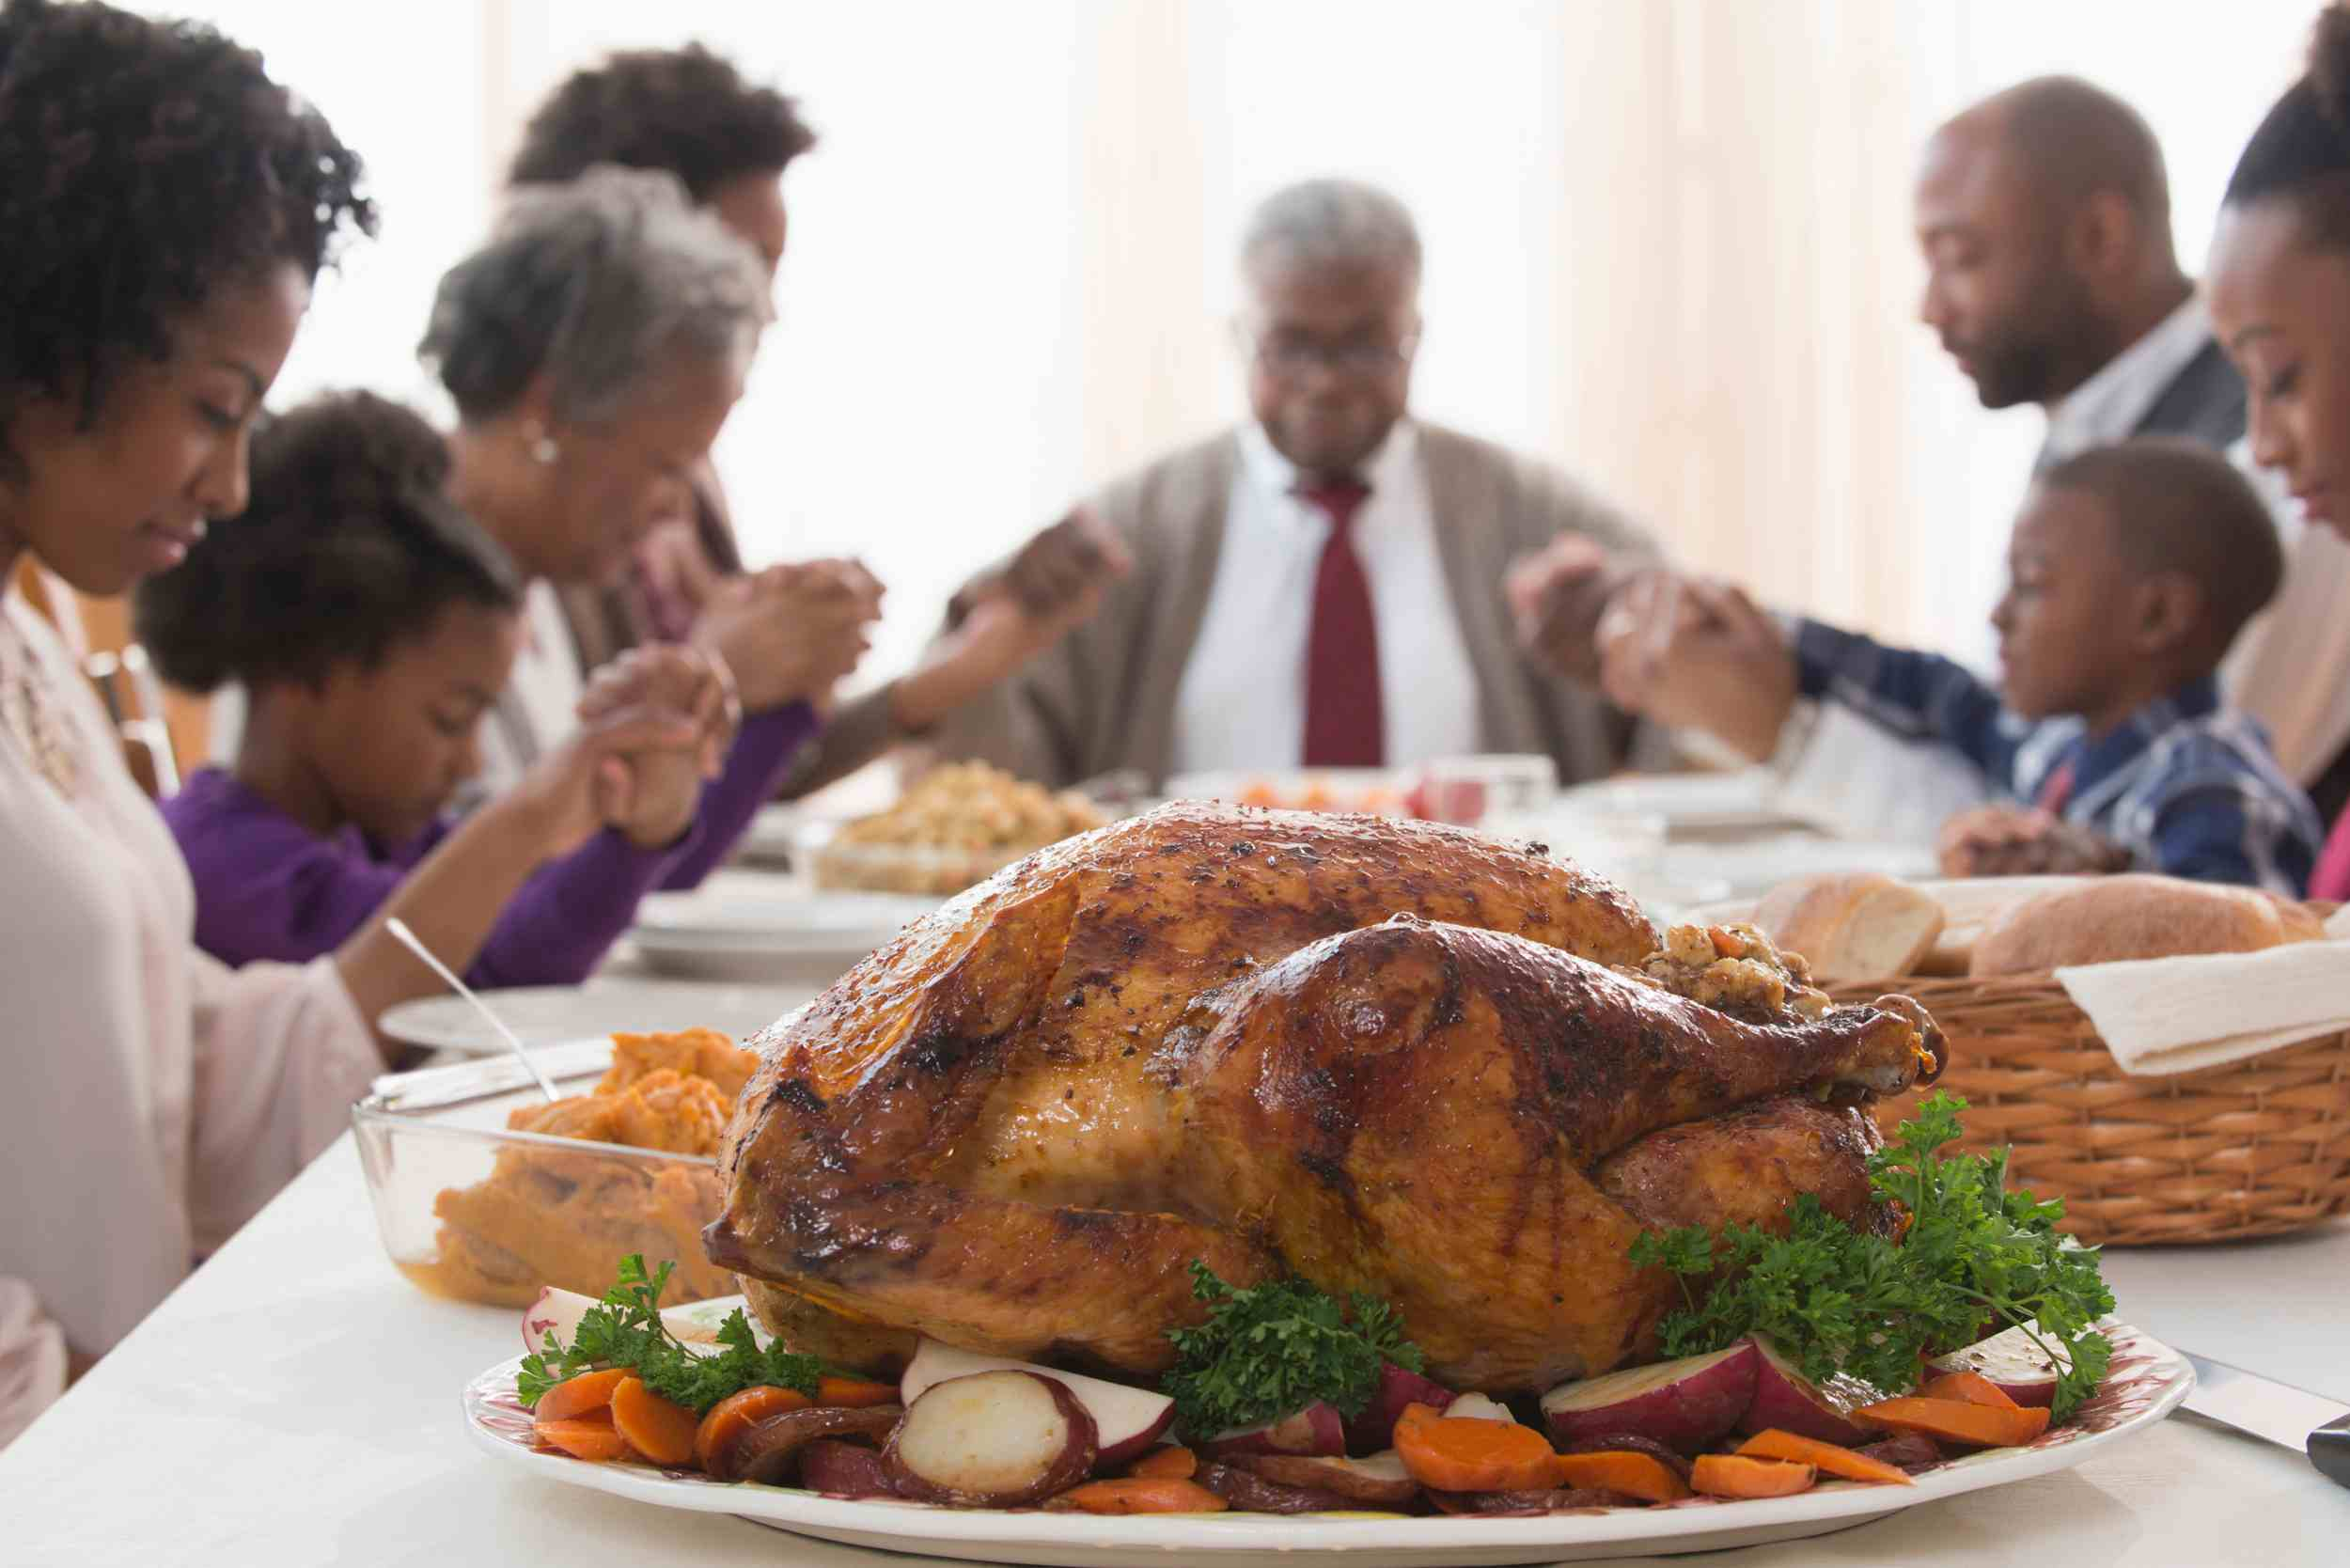 An 18-pound turkey will feed 8 to 12 people